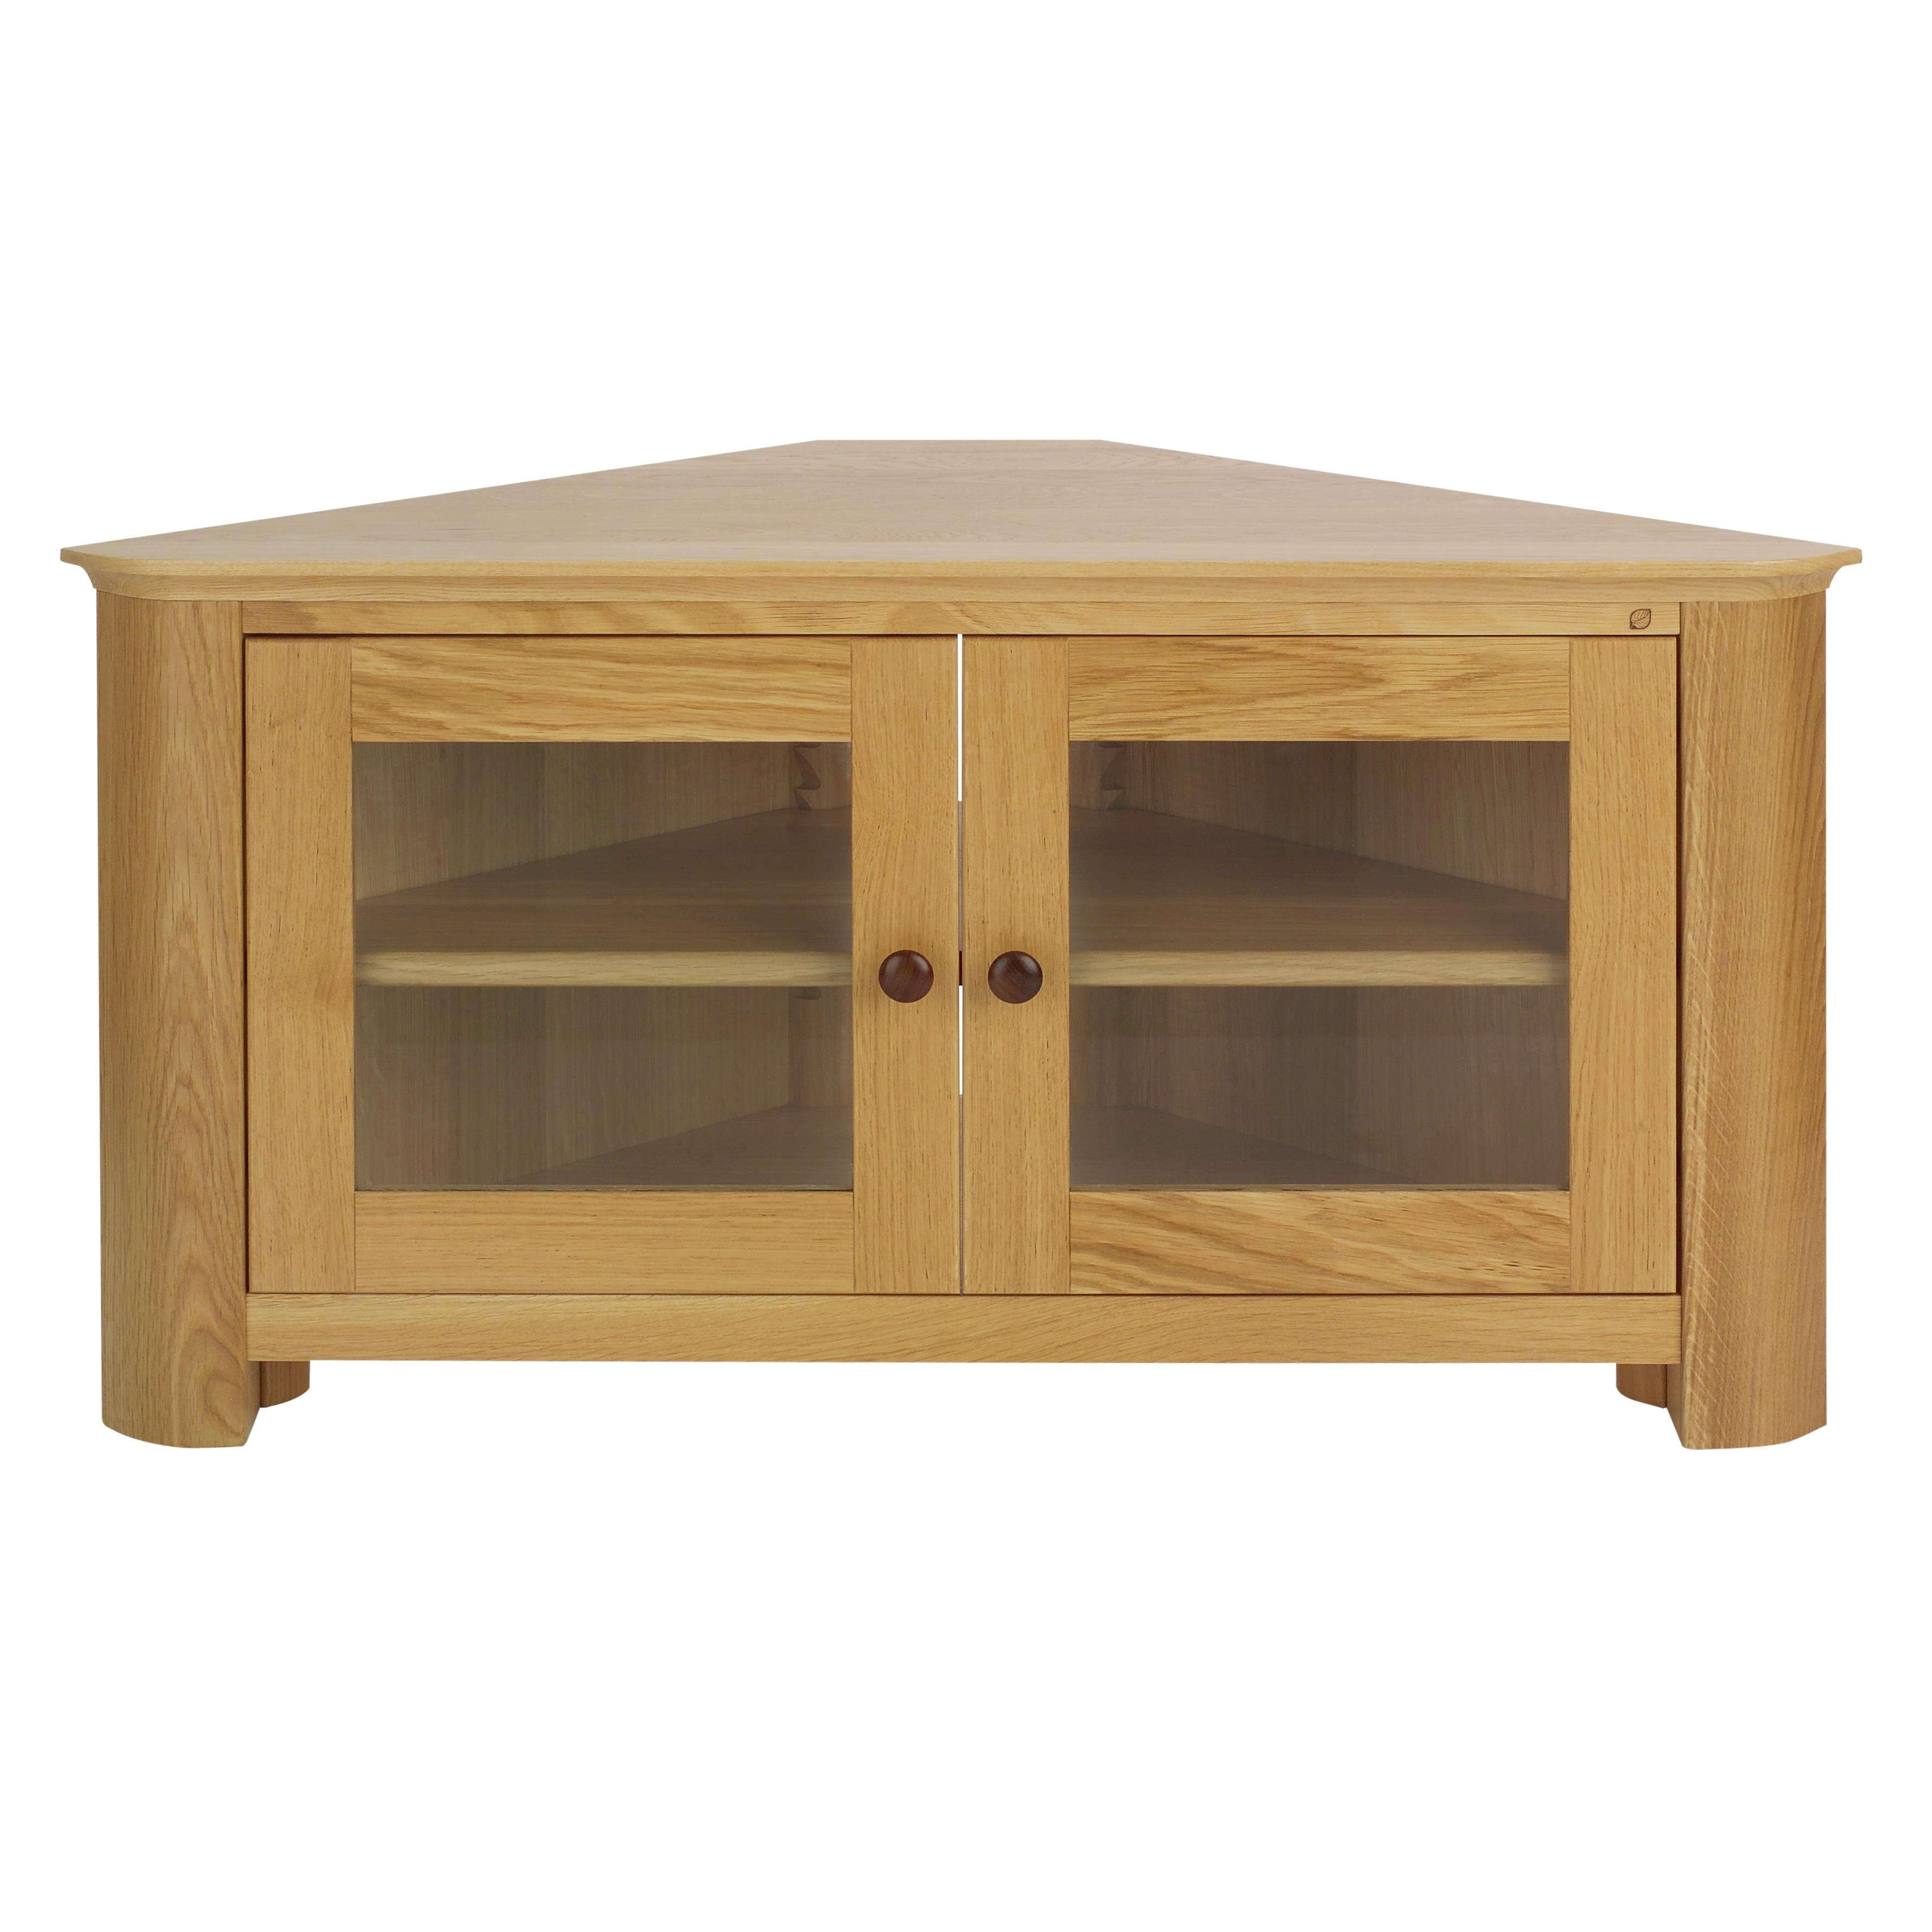 Media Cabinets With Doors Furniture Un Varnish Teak Wood Cabinet Throughout Tv Cabinets Corner Units (View 4 of 20)